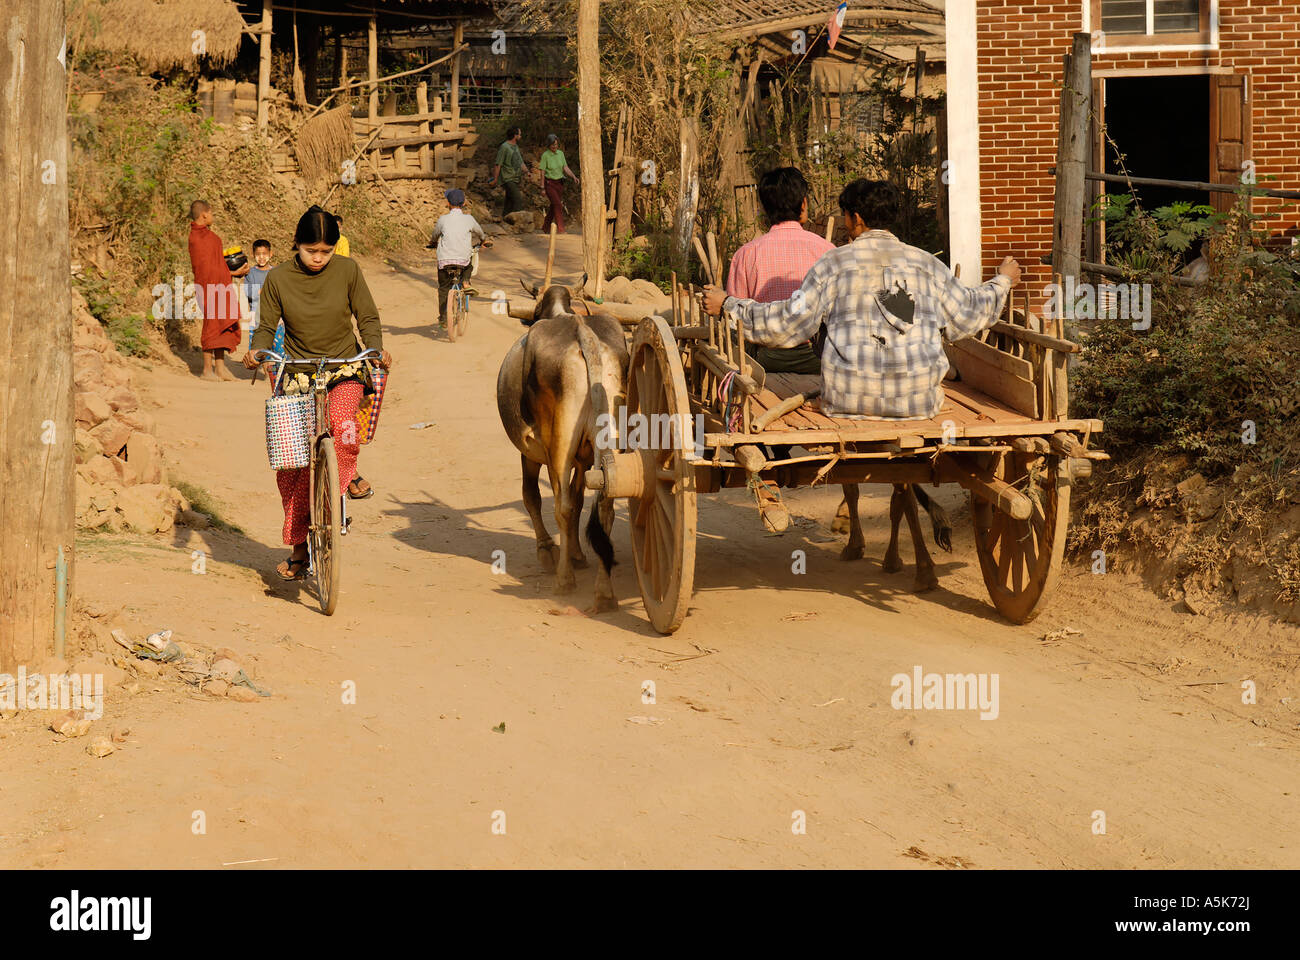 Oxcart on a dusty dirt road, Kyauk Myaung, Myanmar - Stock Image